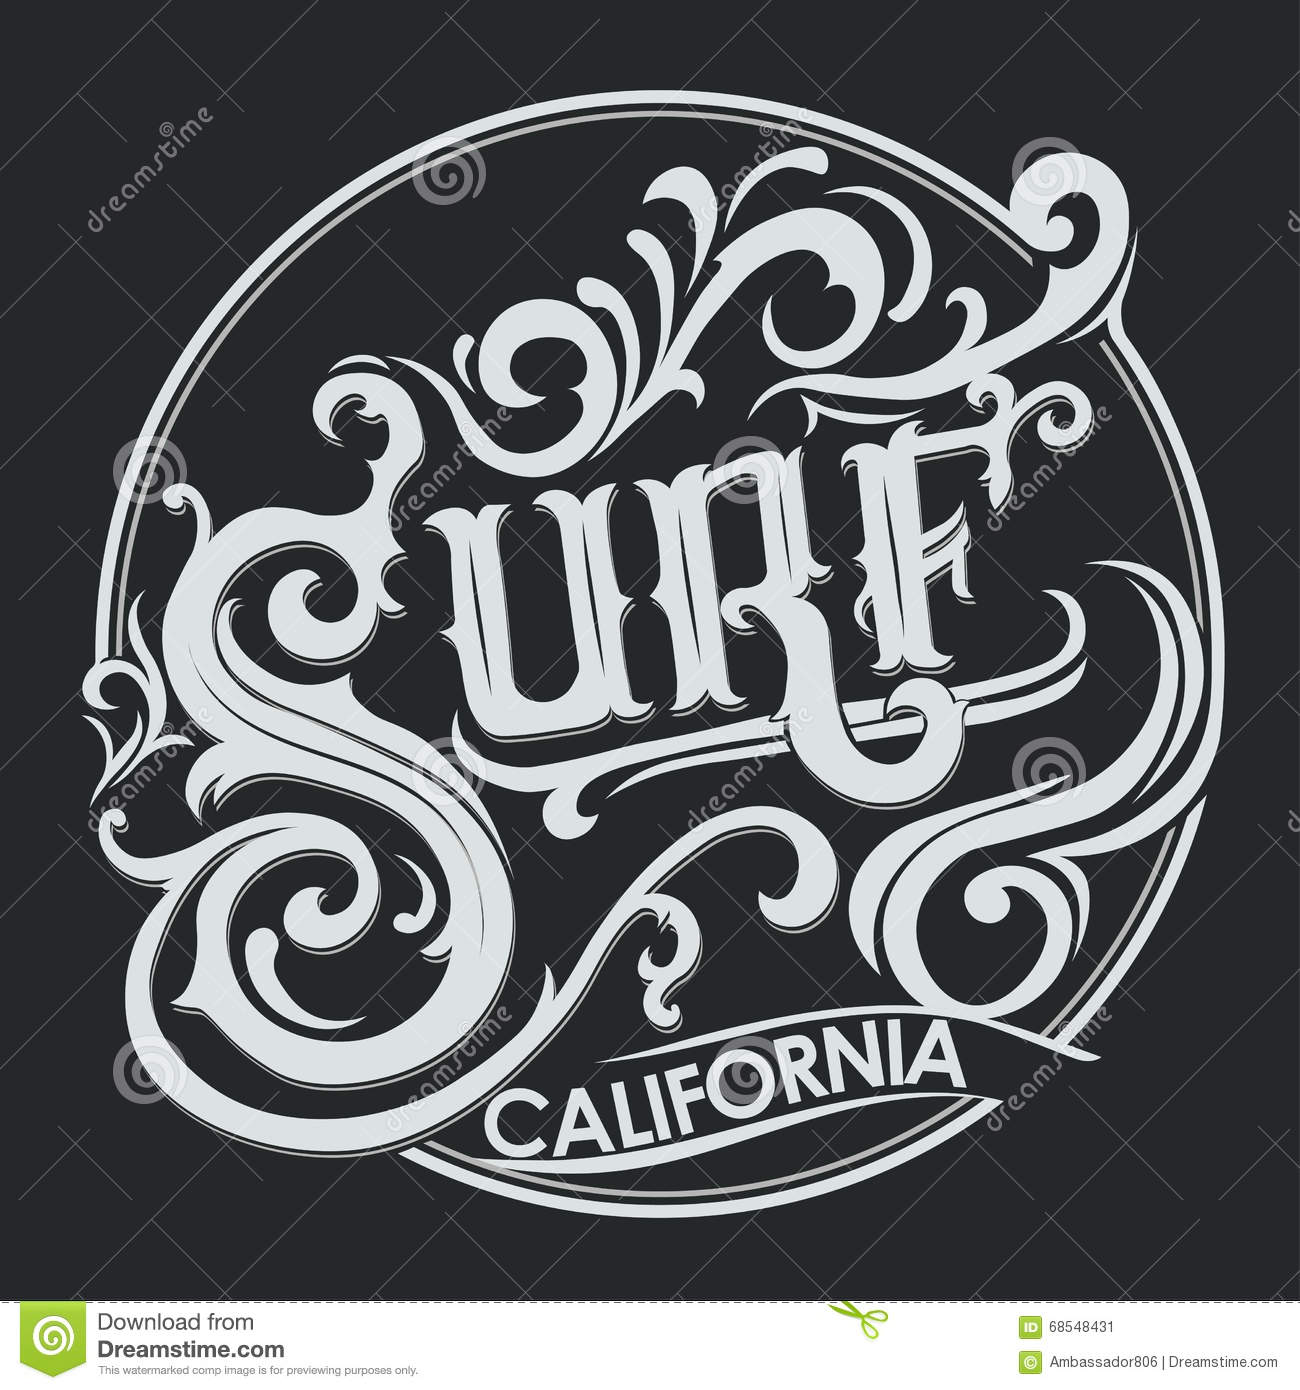 Surfing t shirt graphic design cartoon vector for T shirt graphic designer